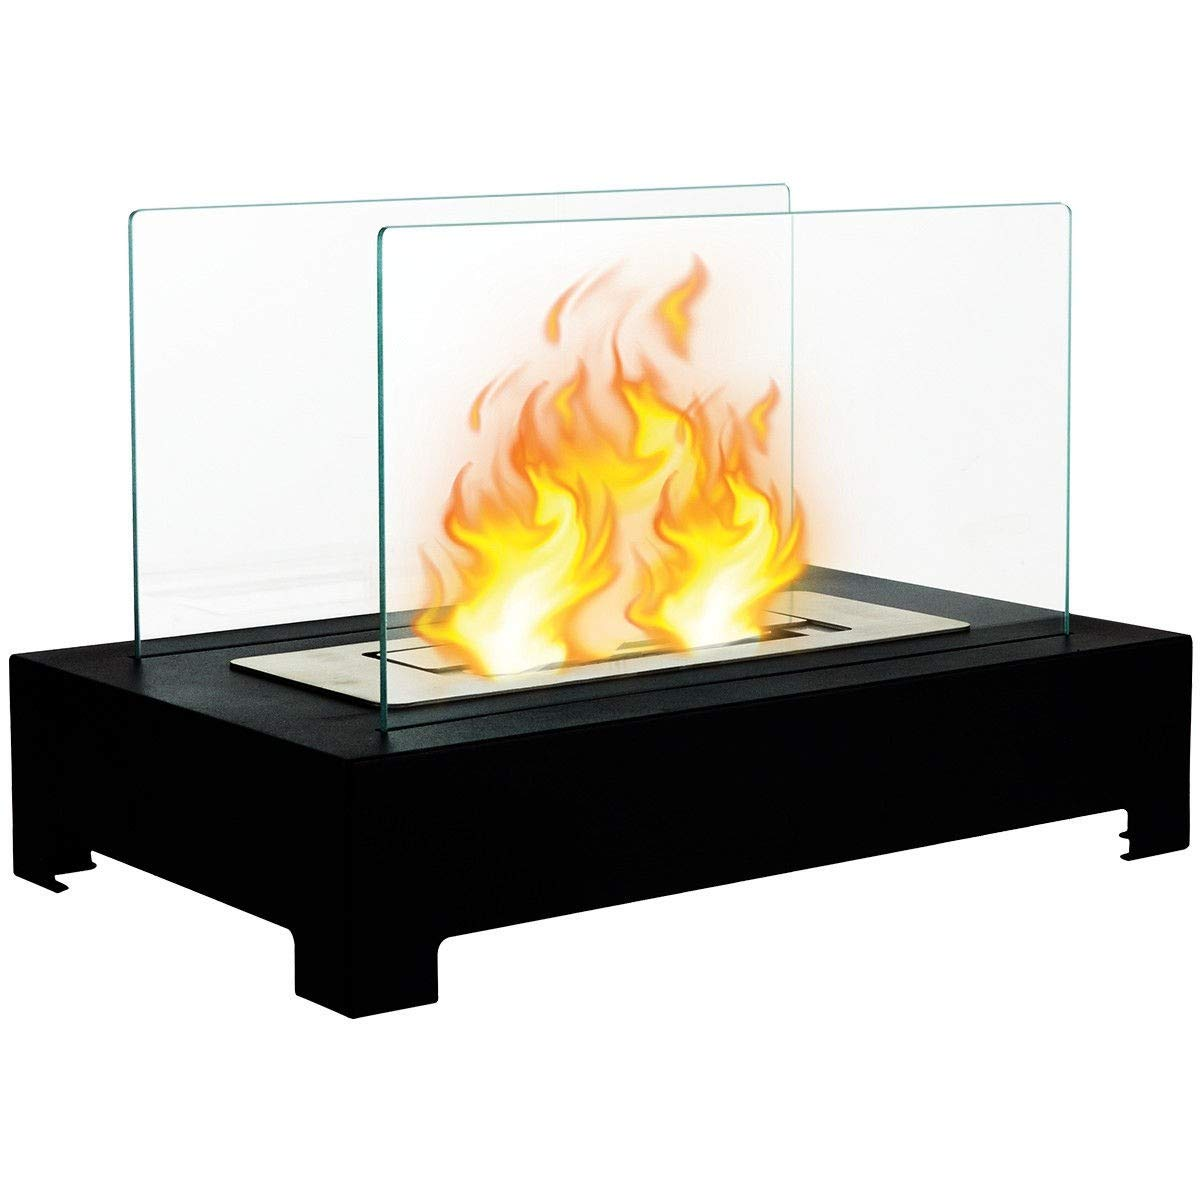 NanaPluz 18'' Portable Stainless Steel Ventless Tabletop Bio Ethanol Fireplace Tempered Glass Freestanding with Ebook by NanaPluz